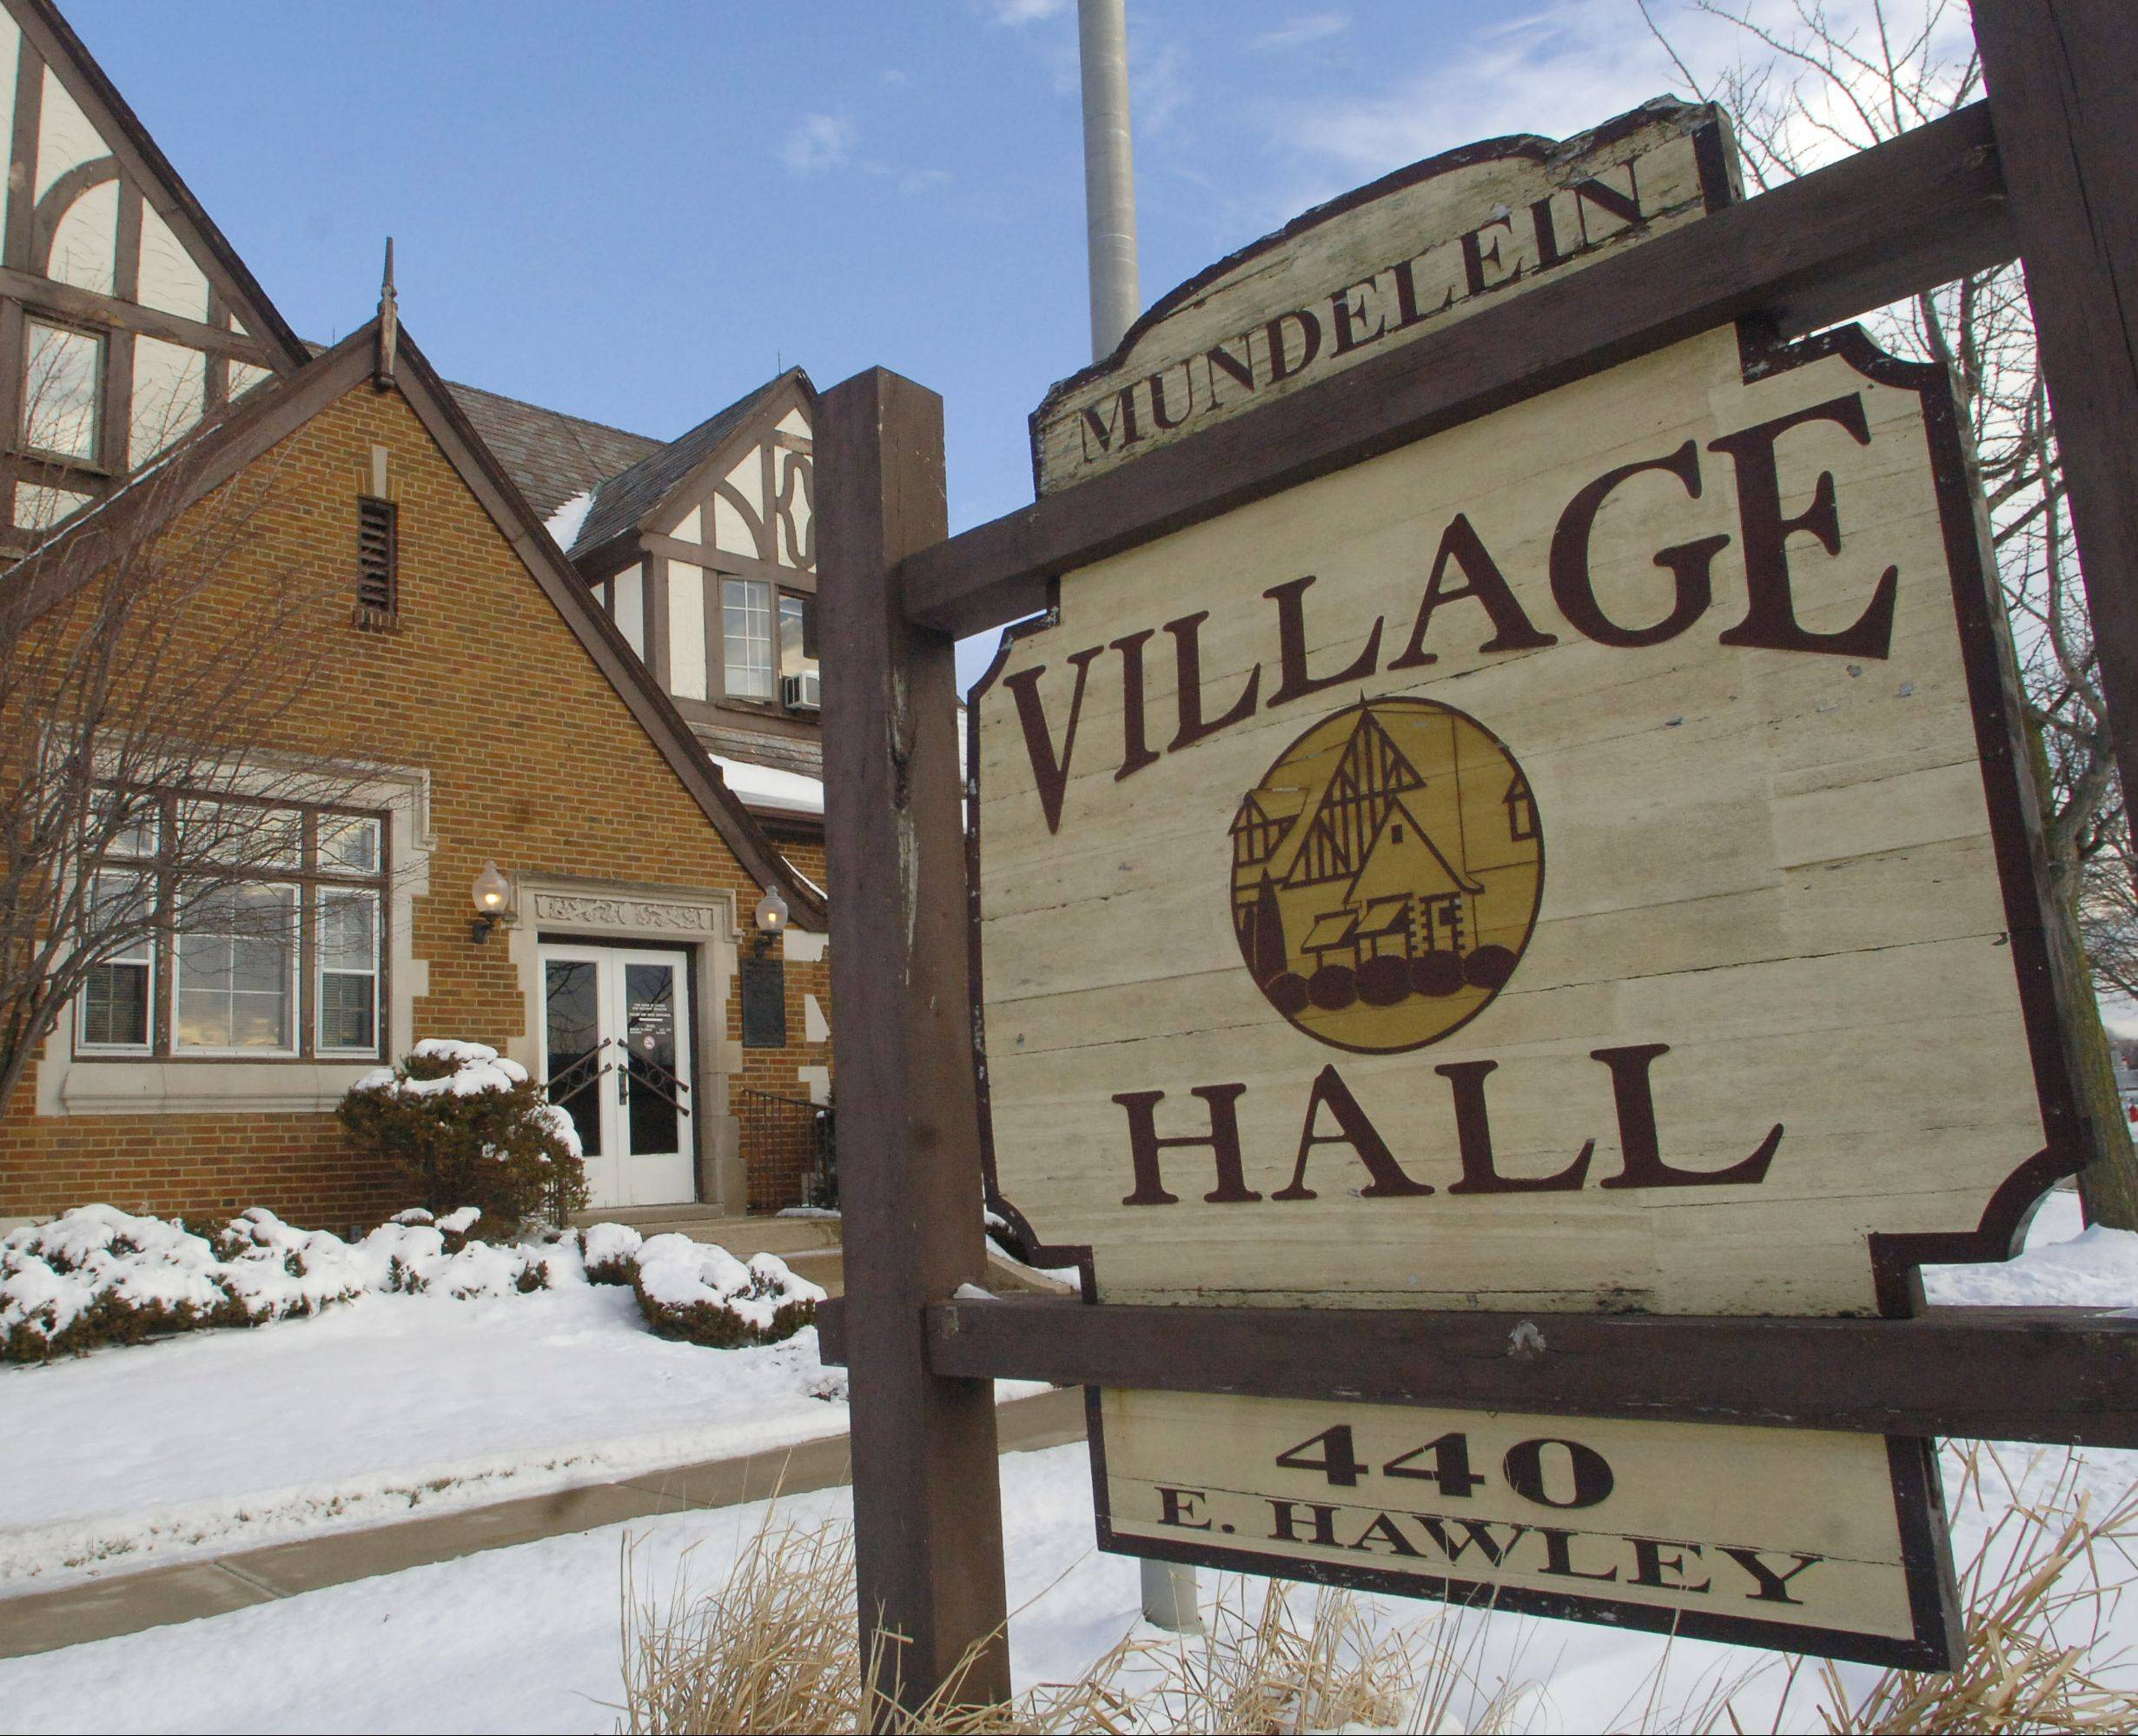 A new logo, banners, signs and advertising are among the tools that could be implemented as part of an effort to brand the village of Mundelein.